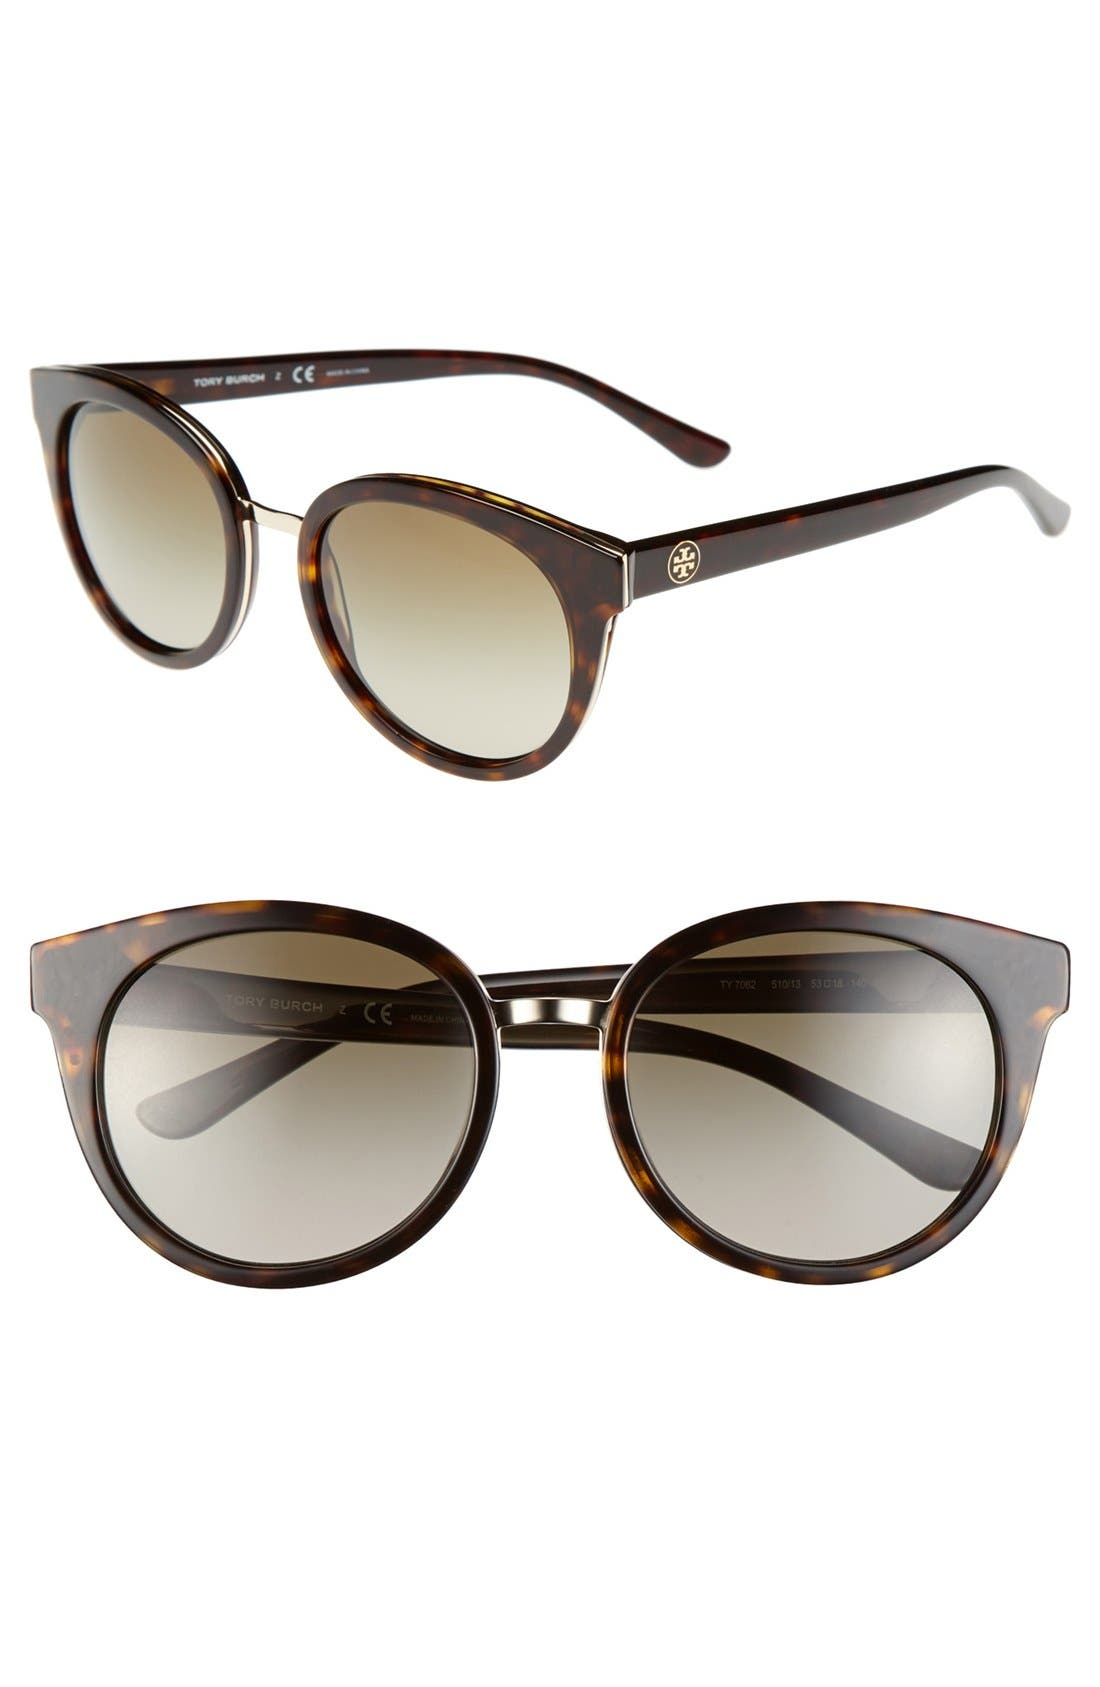 Alternate Image 1 Selected - Tory Burch 'Phantos' 53mm Retro Sunglasses